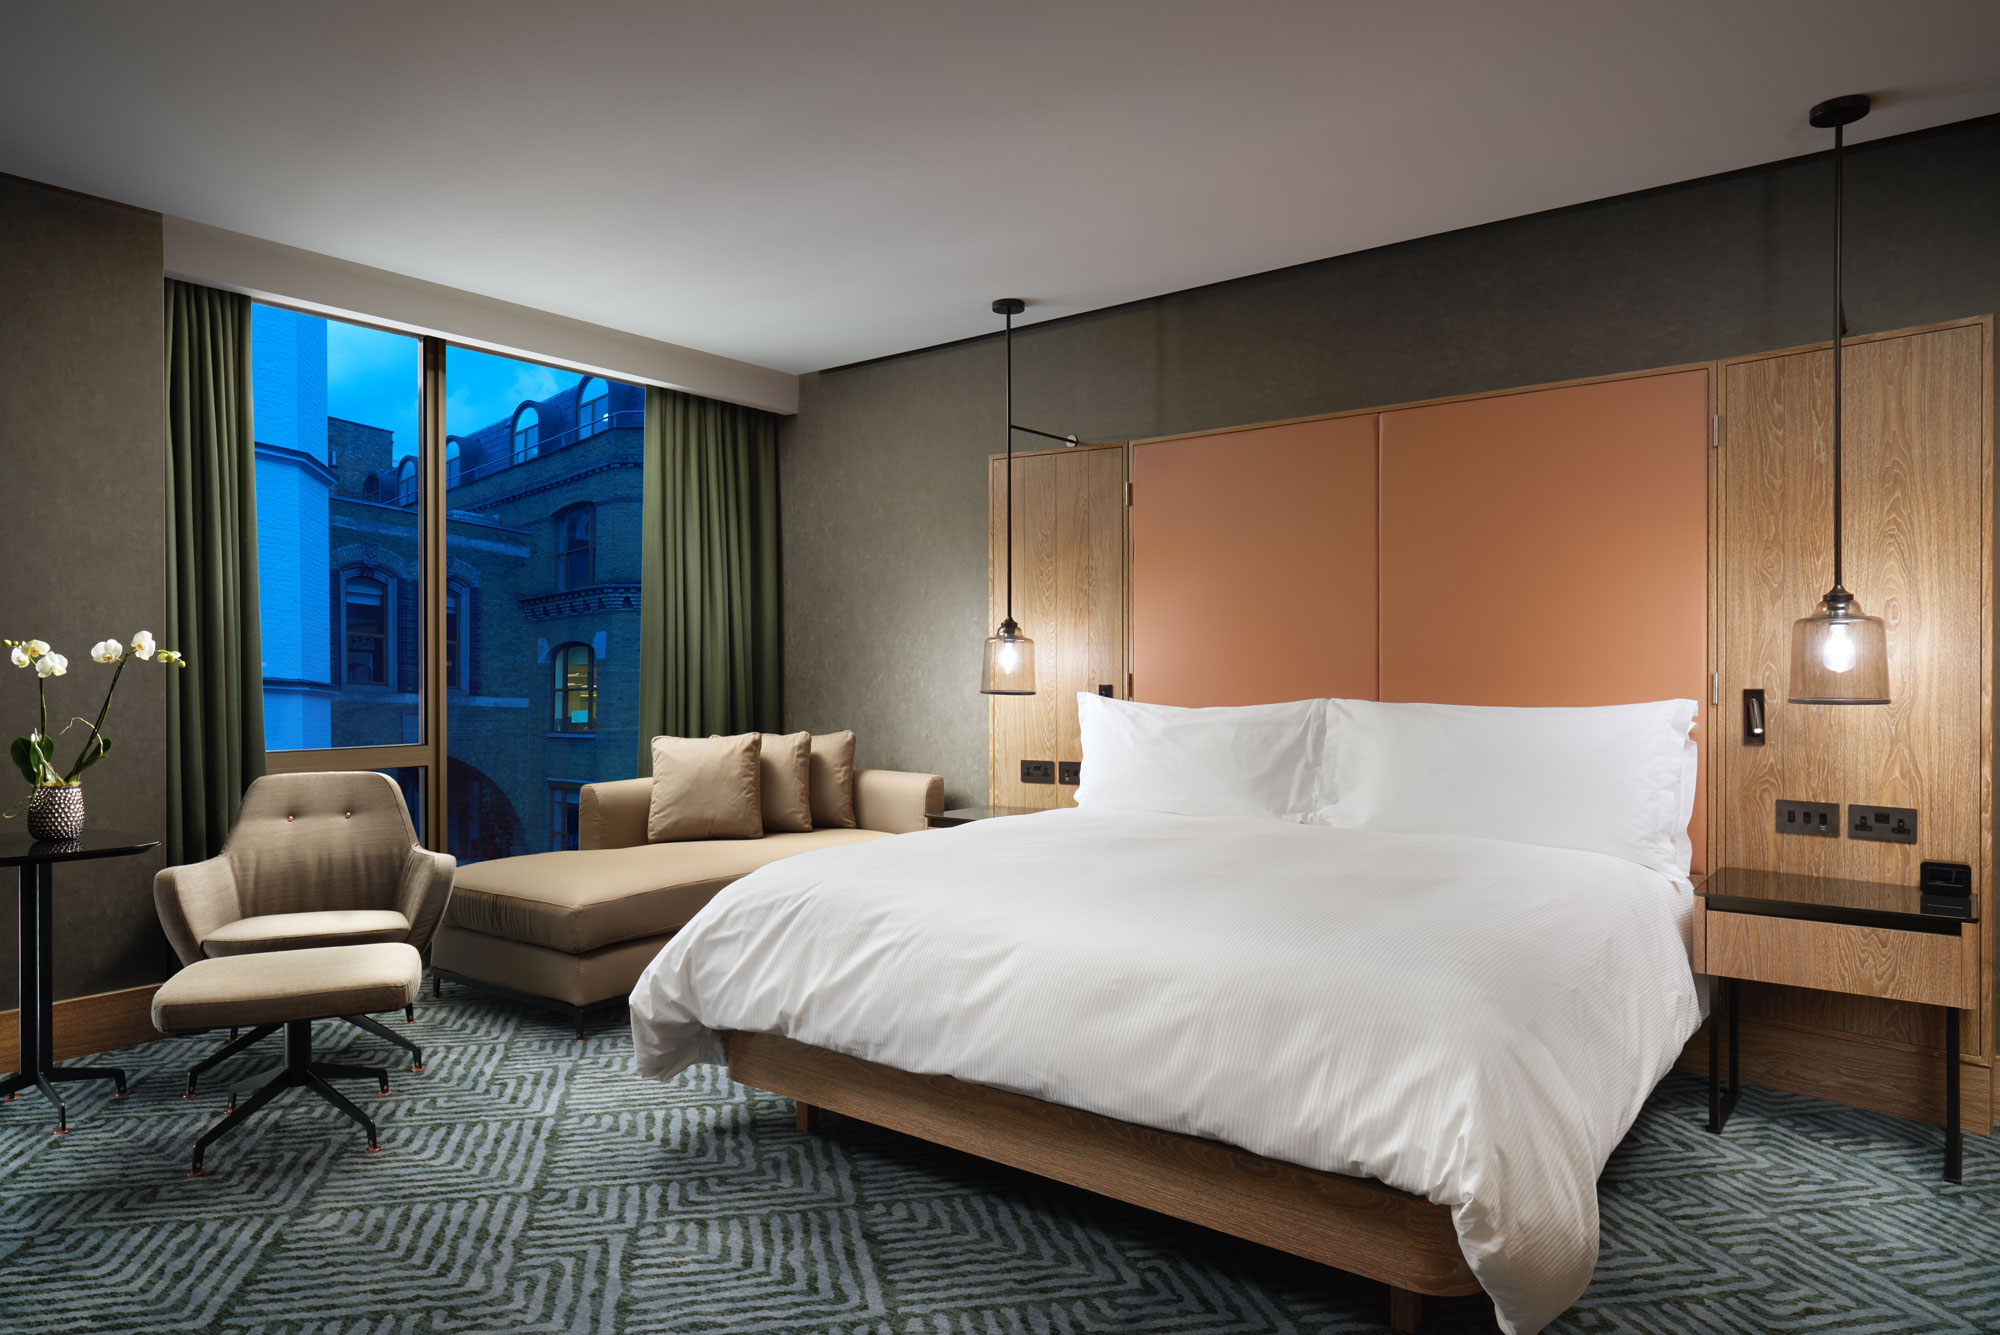 Guestroom at the newly opened Hilton London Bankside